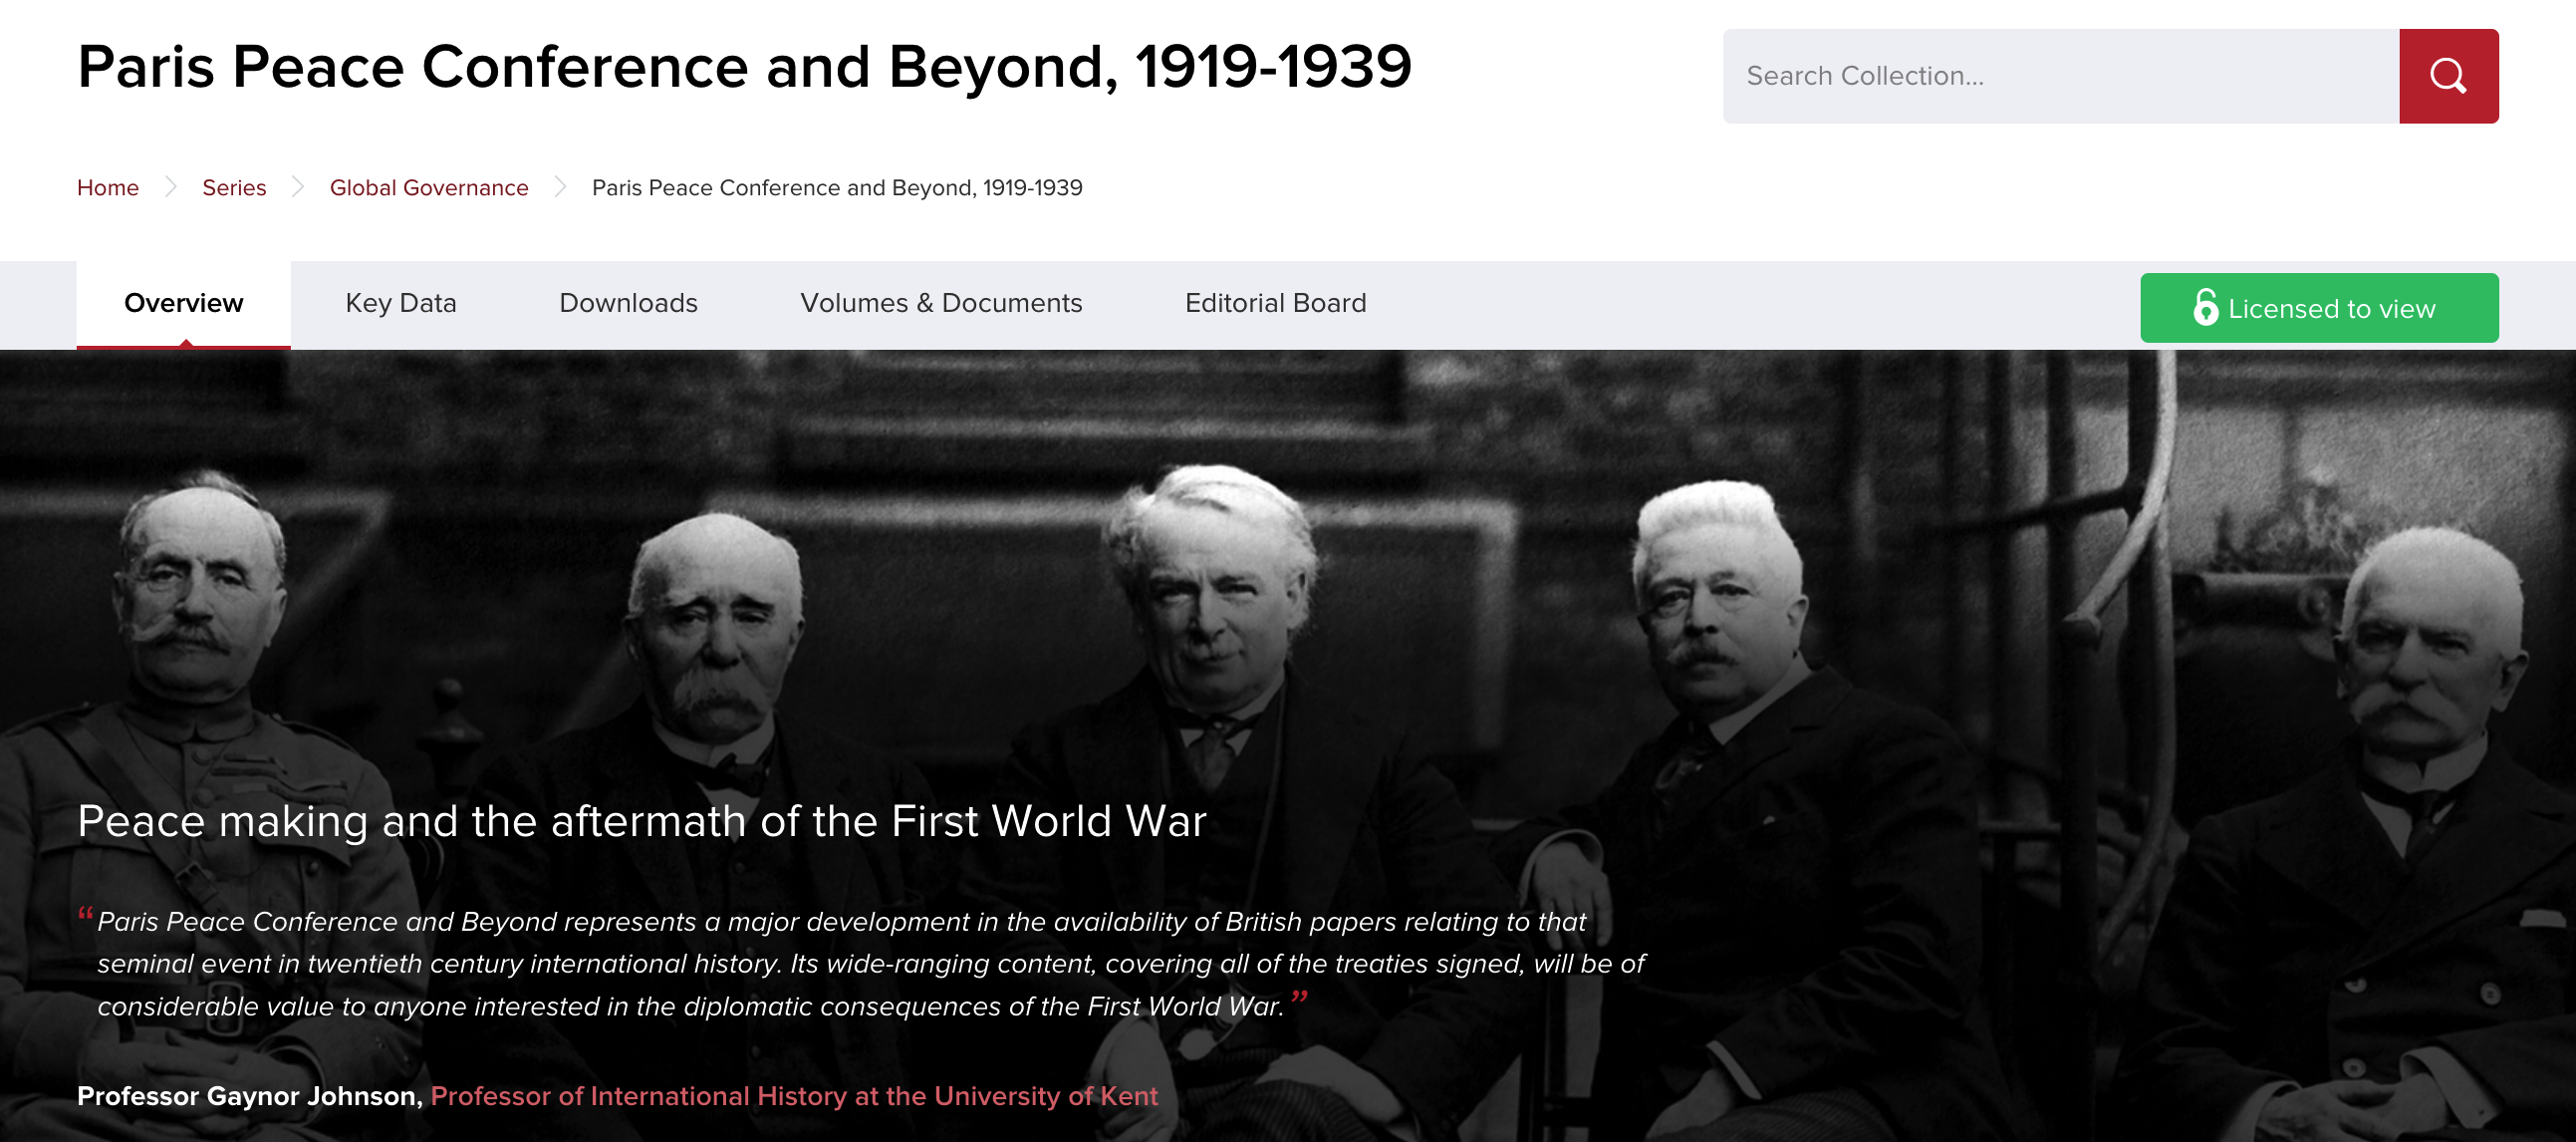 An image of the resource' s homepage, depicting 4 key statesmen (Foch, Clemenceau, Lloyd George, Orlando)